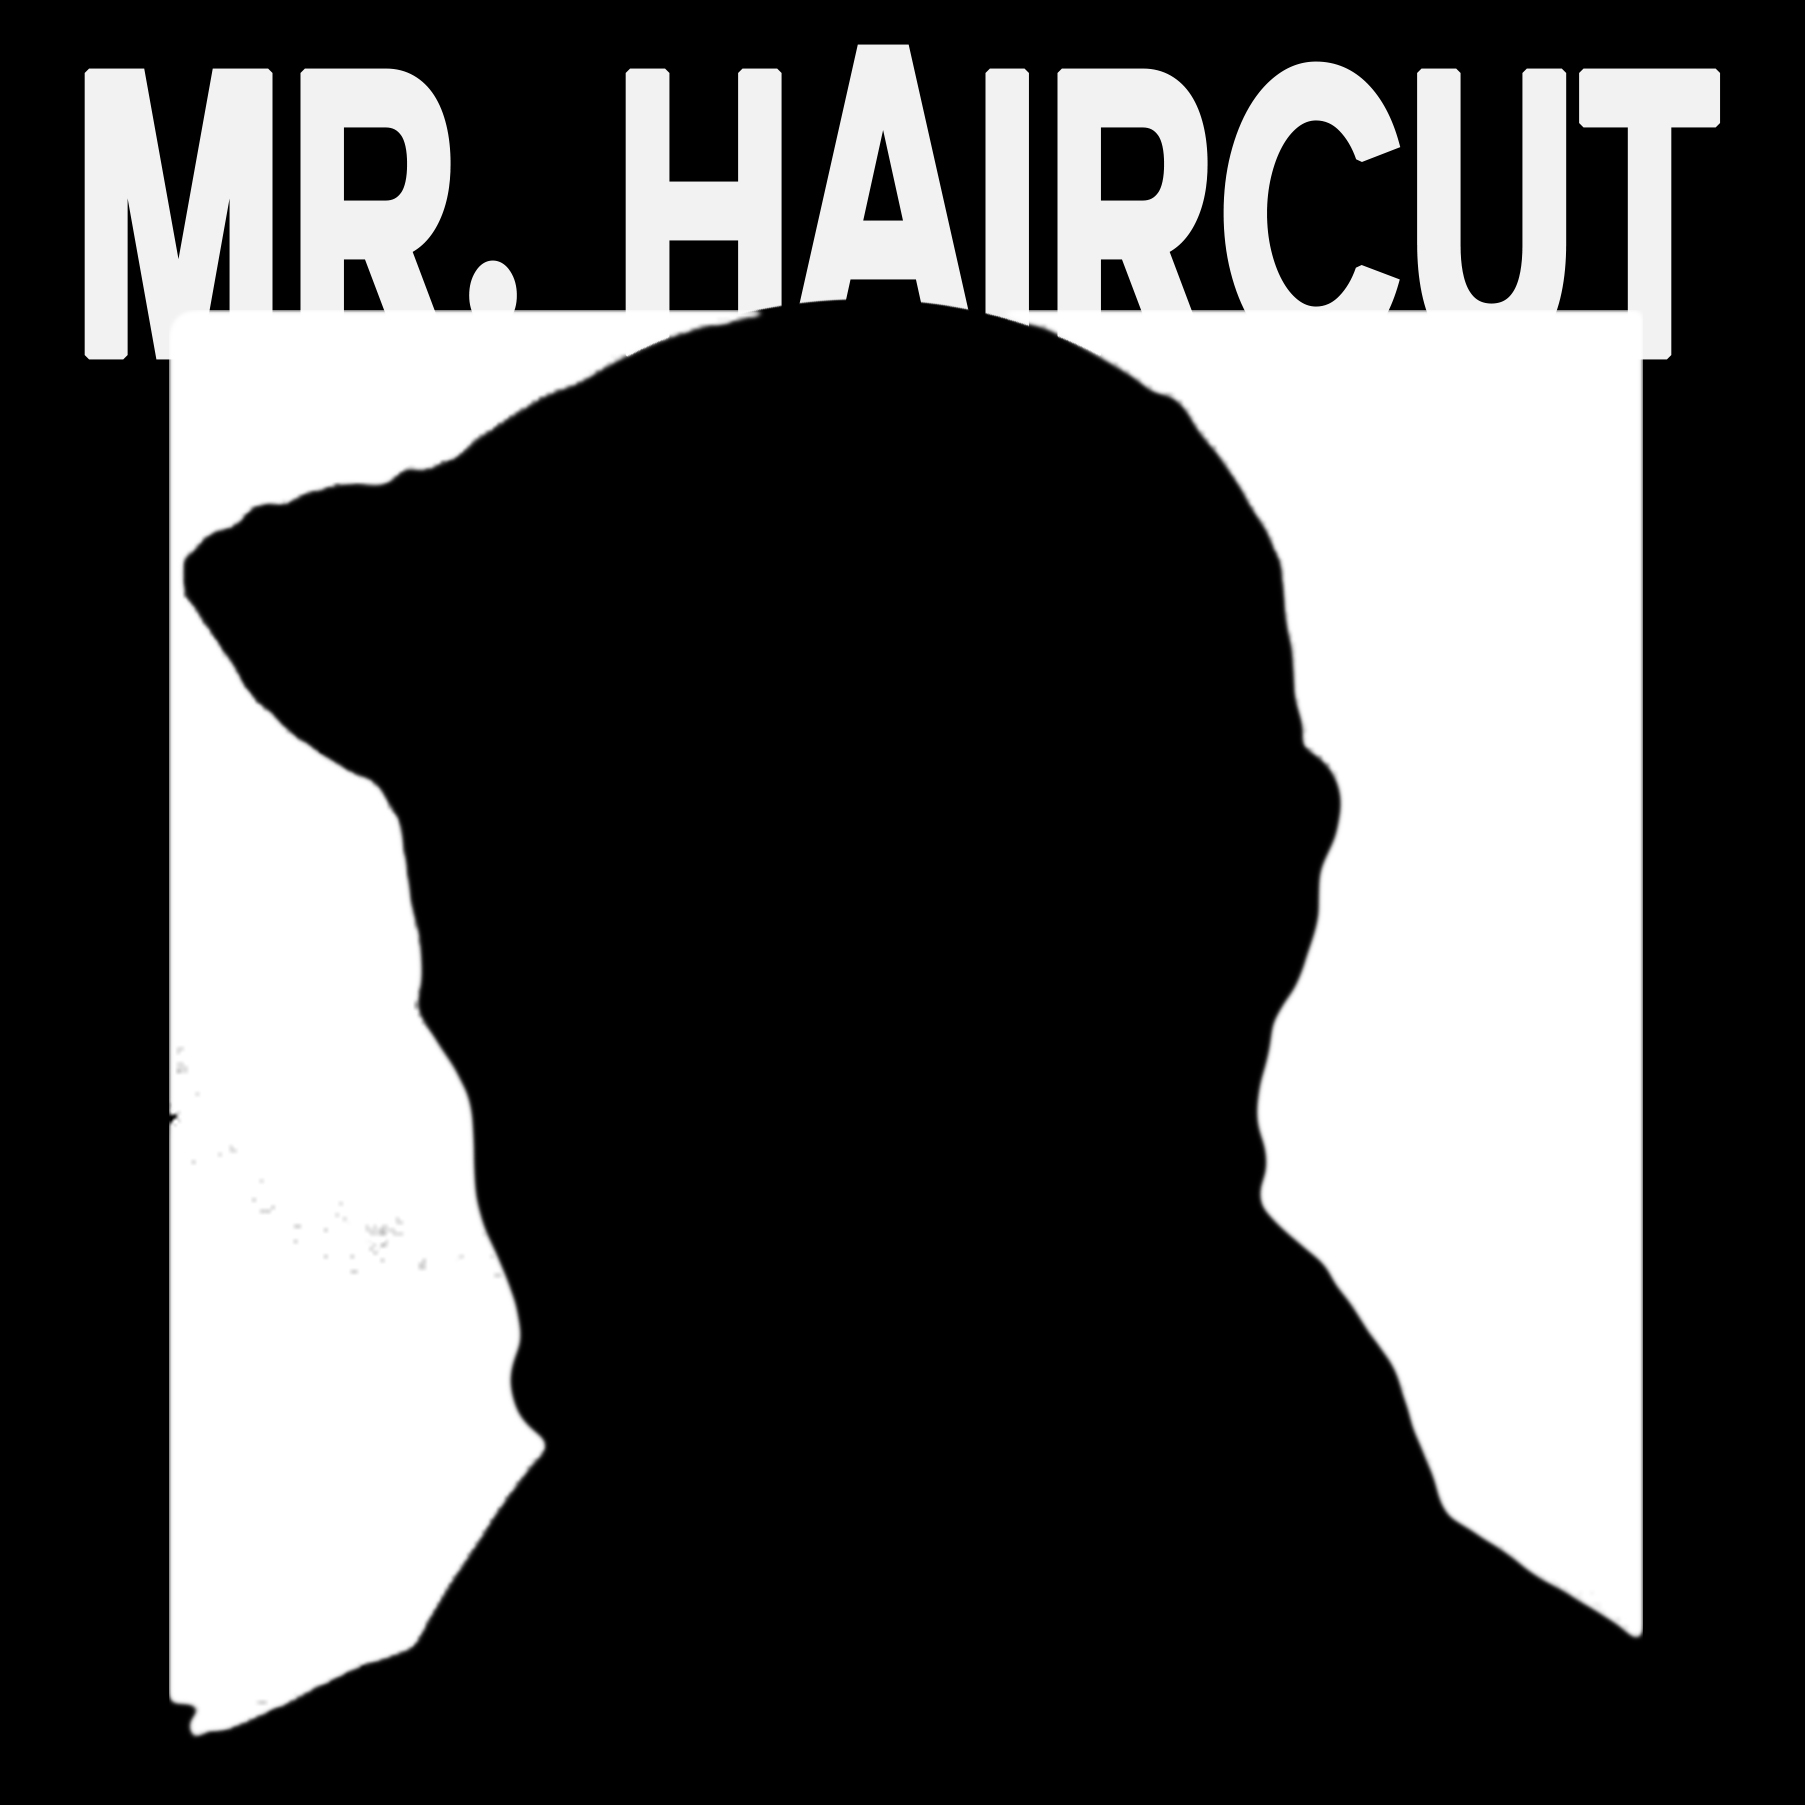 Mr Haircut logo